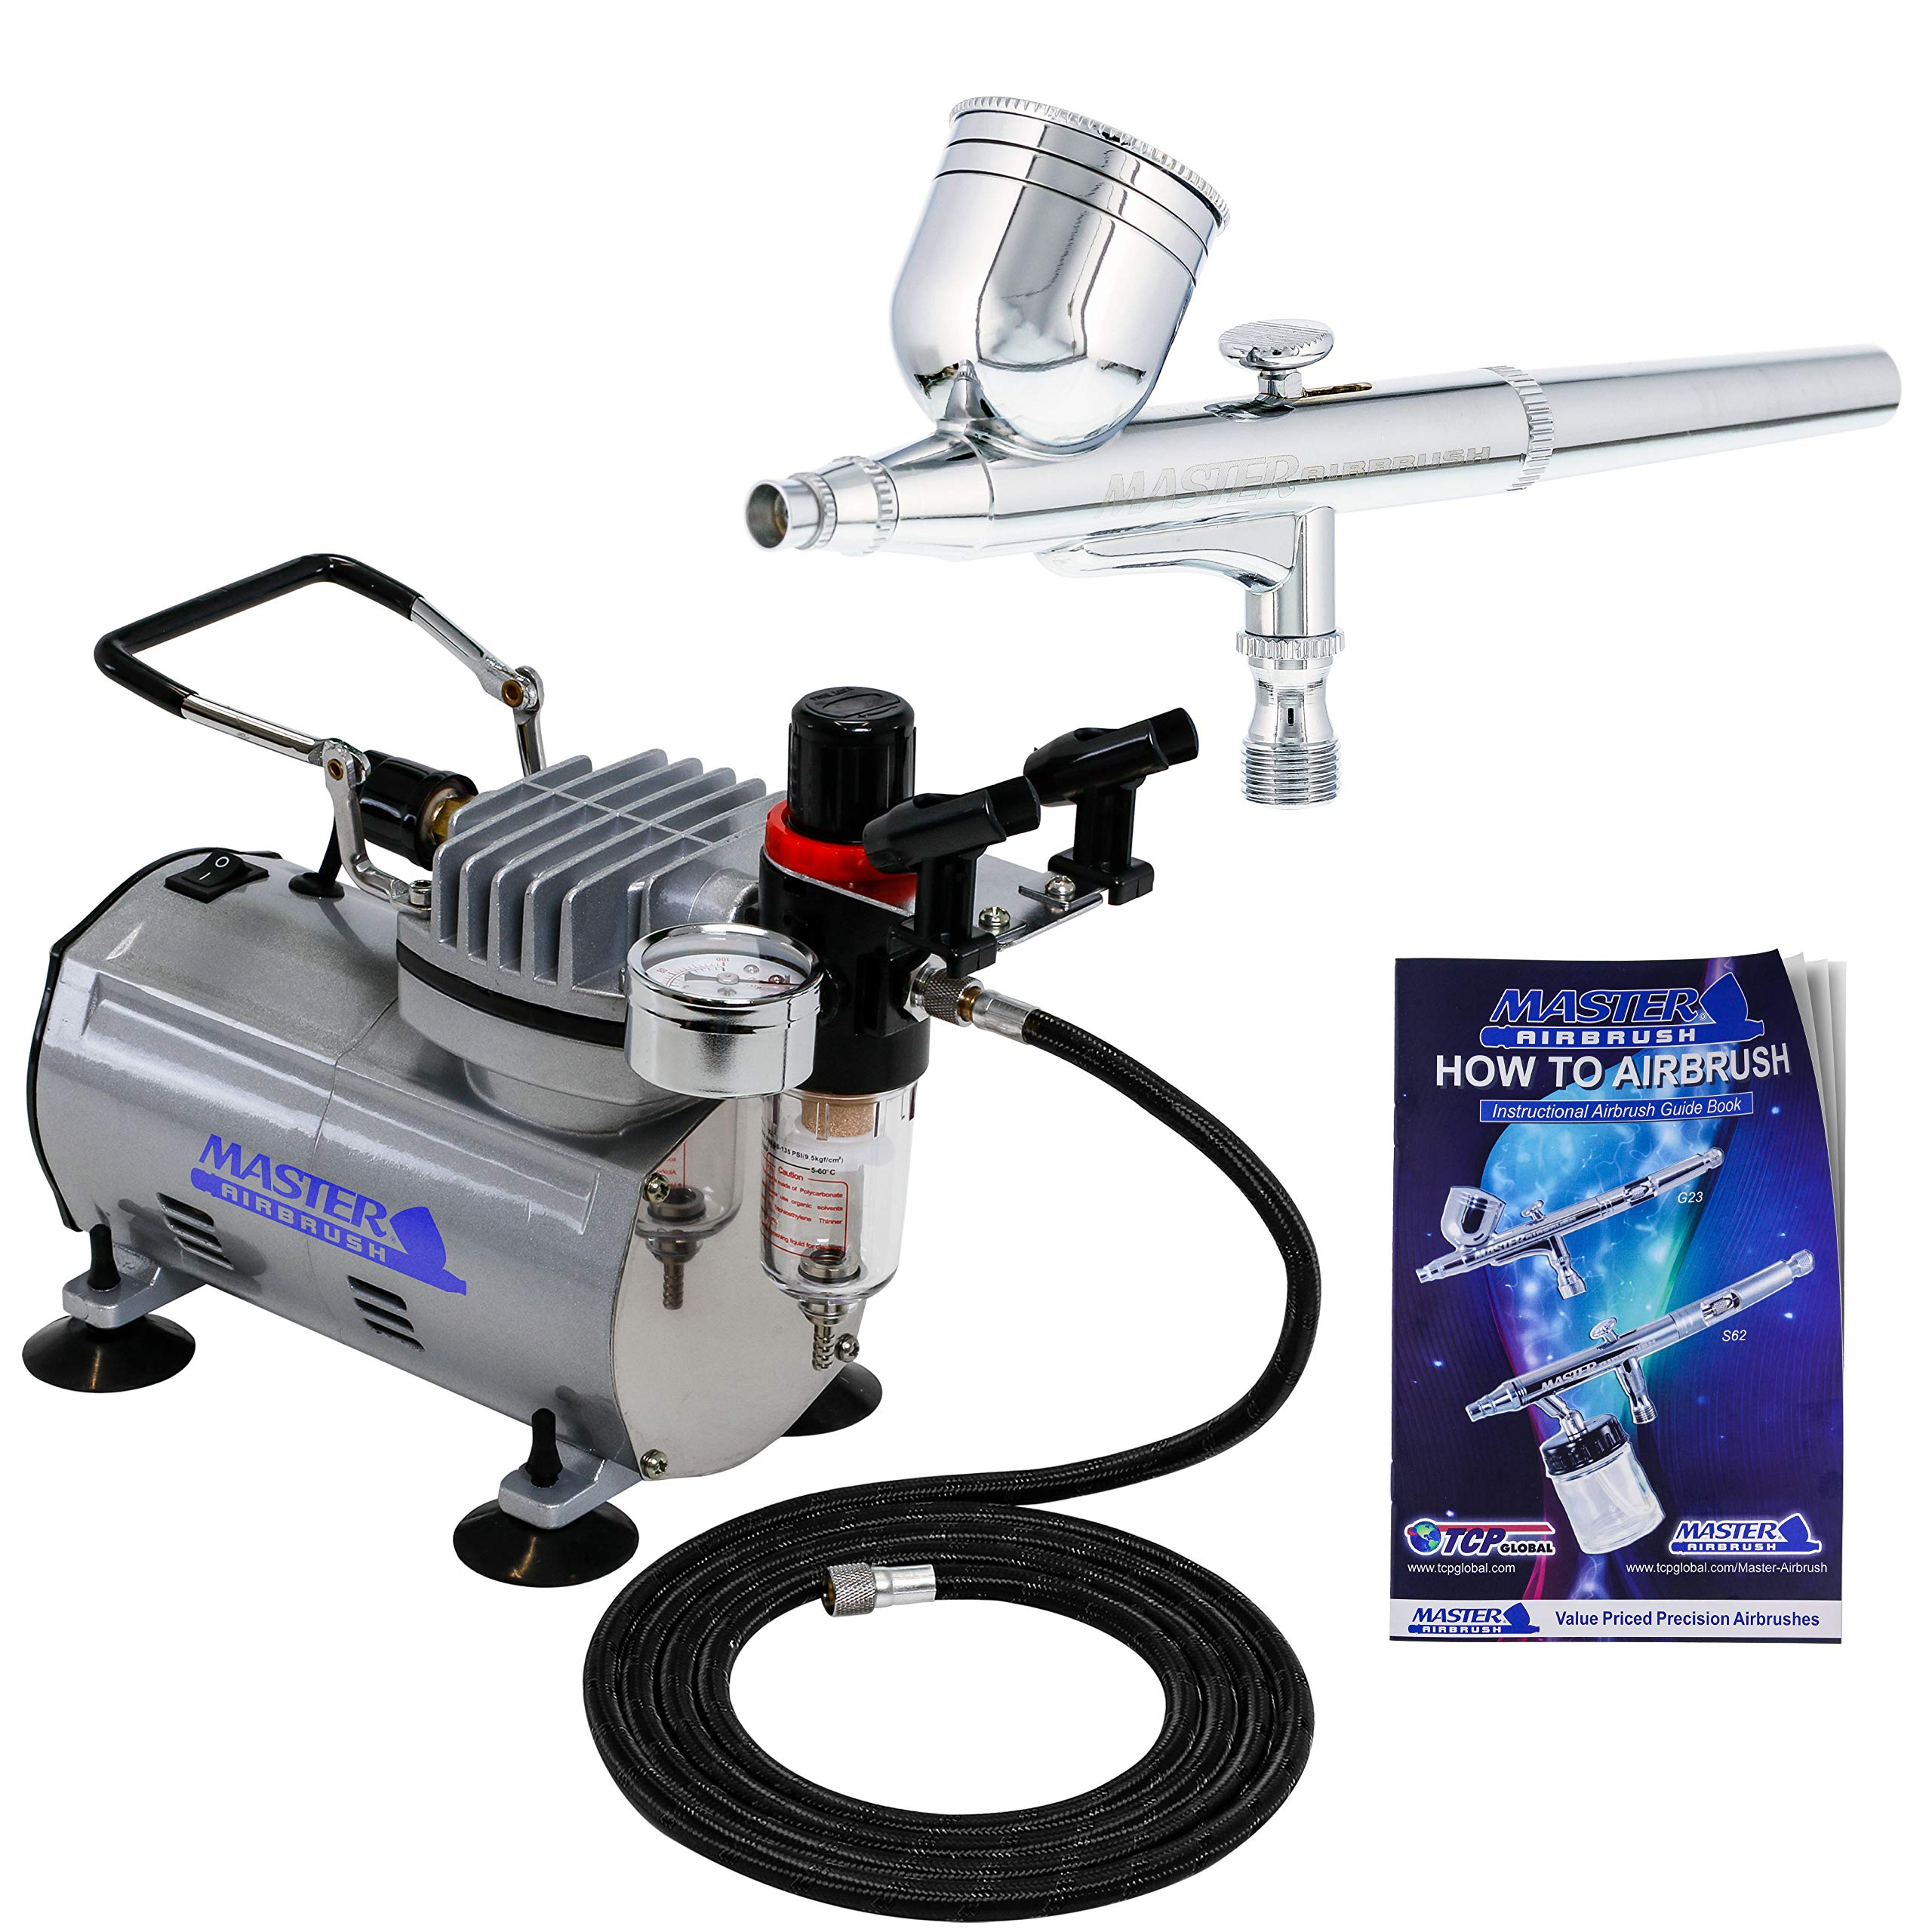 Master Airbrush Multi-purpose Gravity Feed Dual-action Airbrush Kit with 6 Foot Hose and a Powerful 1/5hp Single Piston Quiet Air Compressor by Master Airbrush